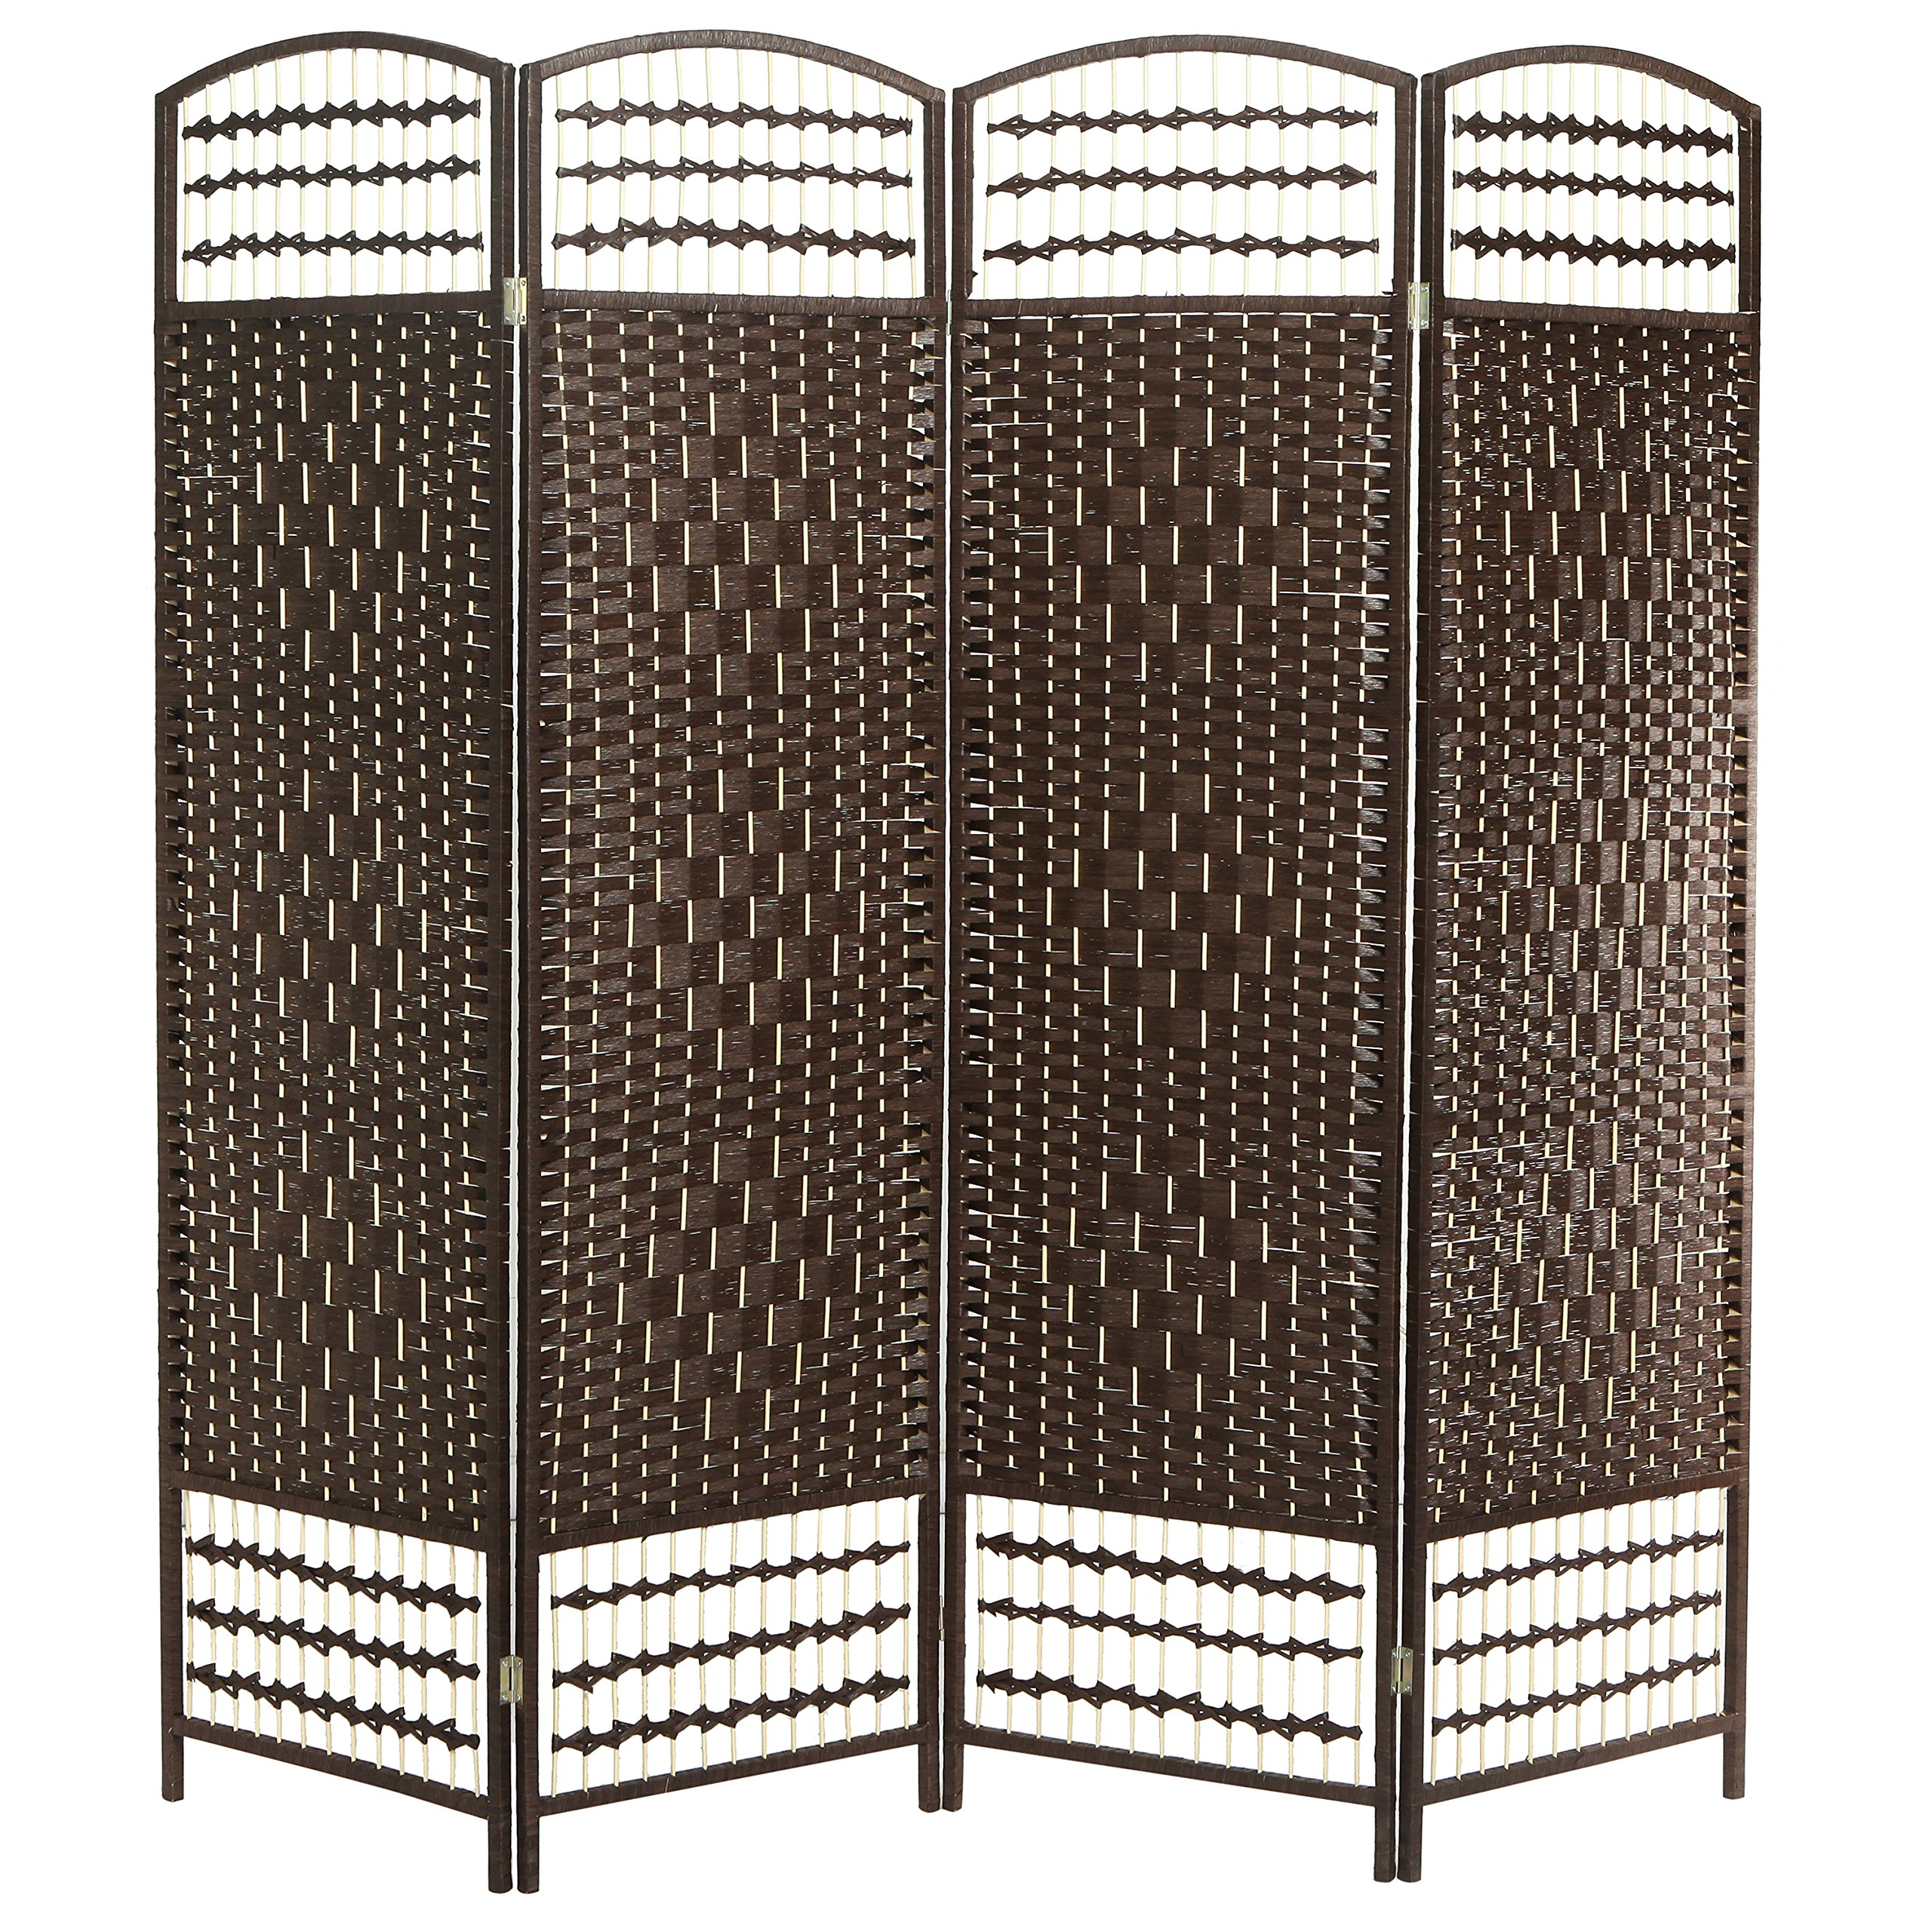 MyGift 4 Panel Woven Design Room Divider, Wood Frame Privacy Screen, Brown